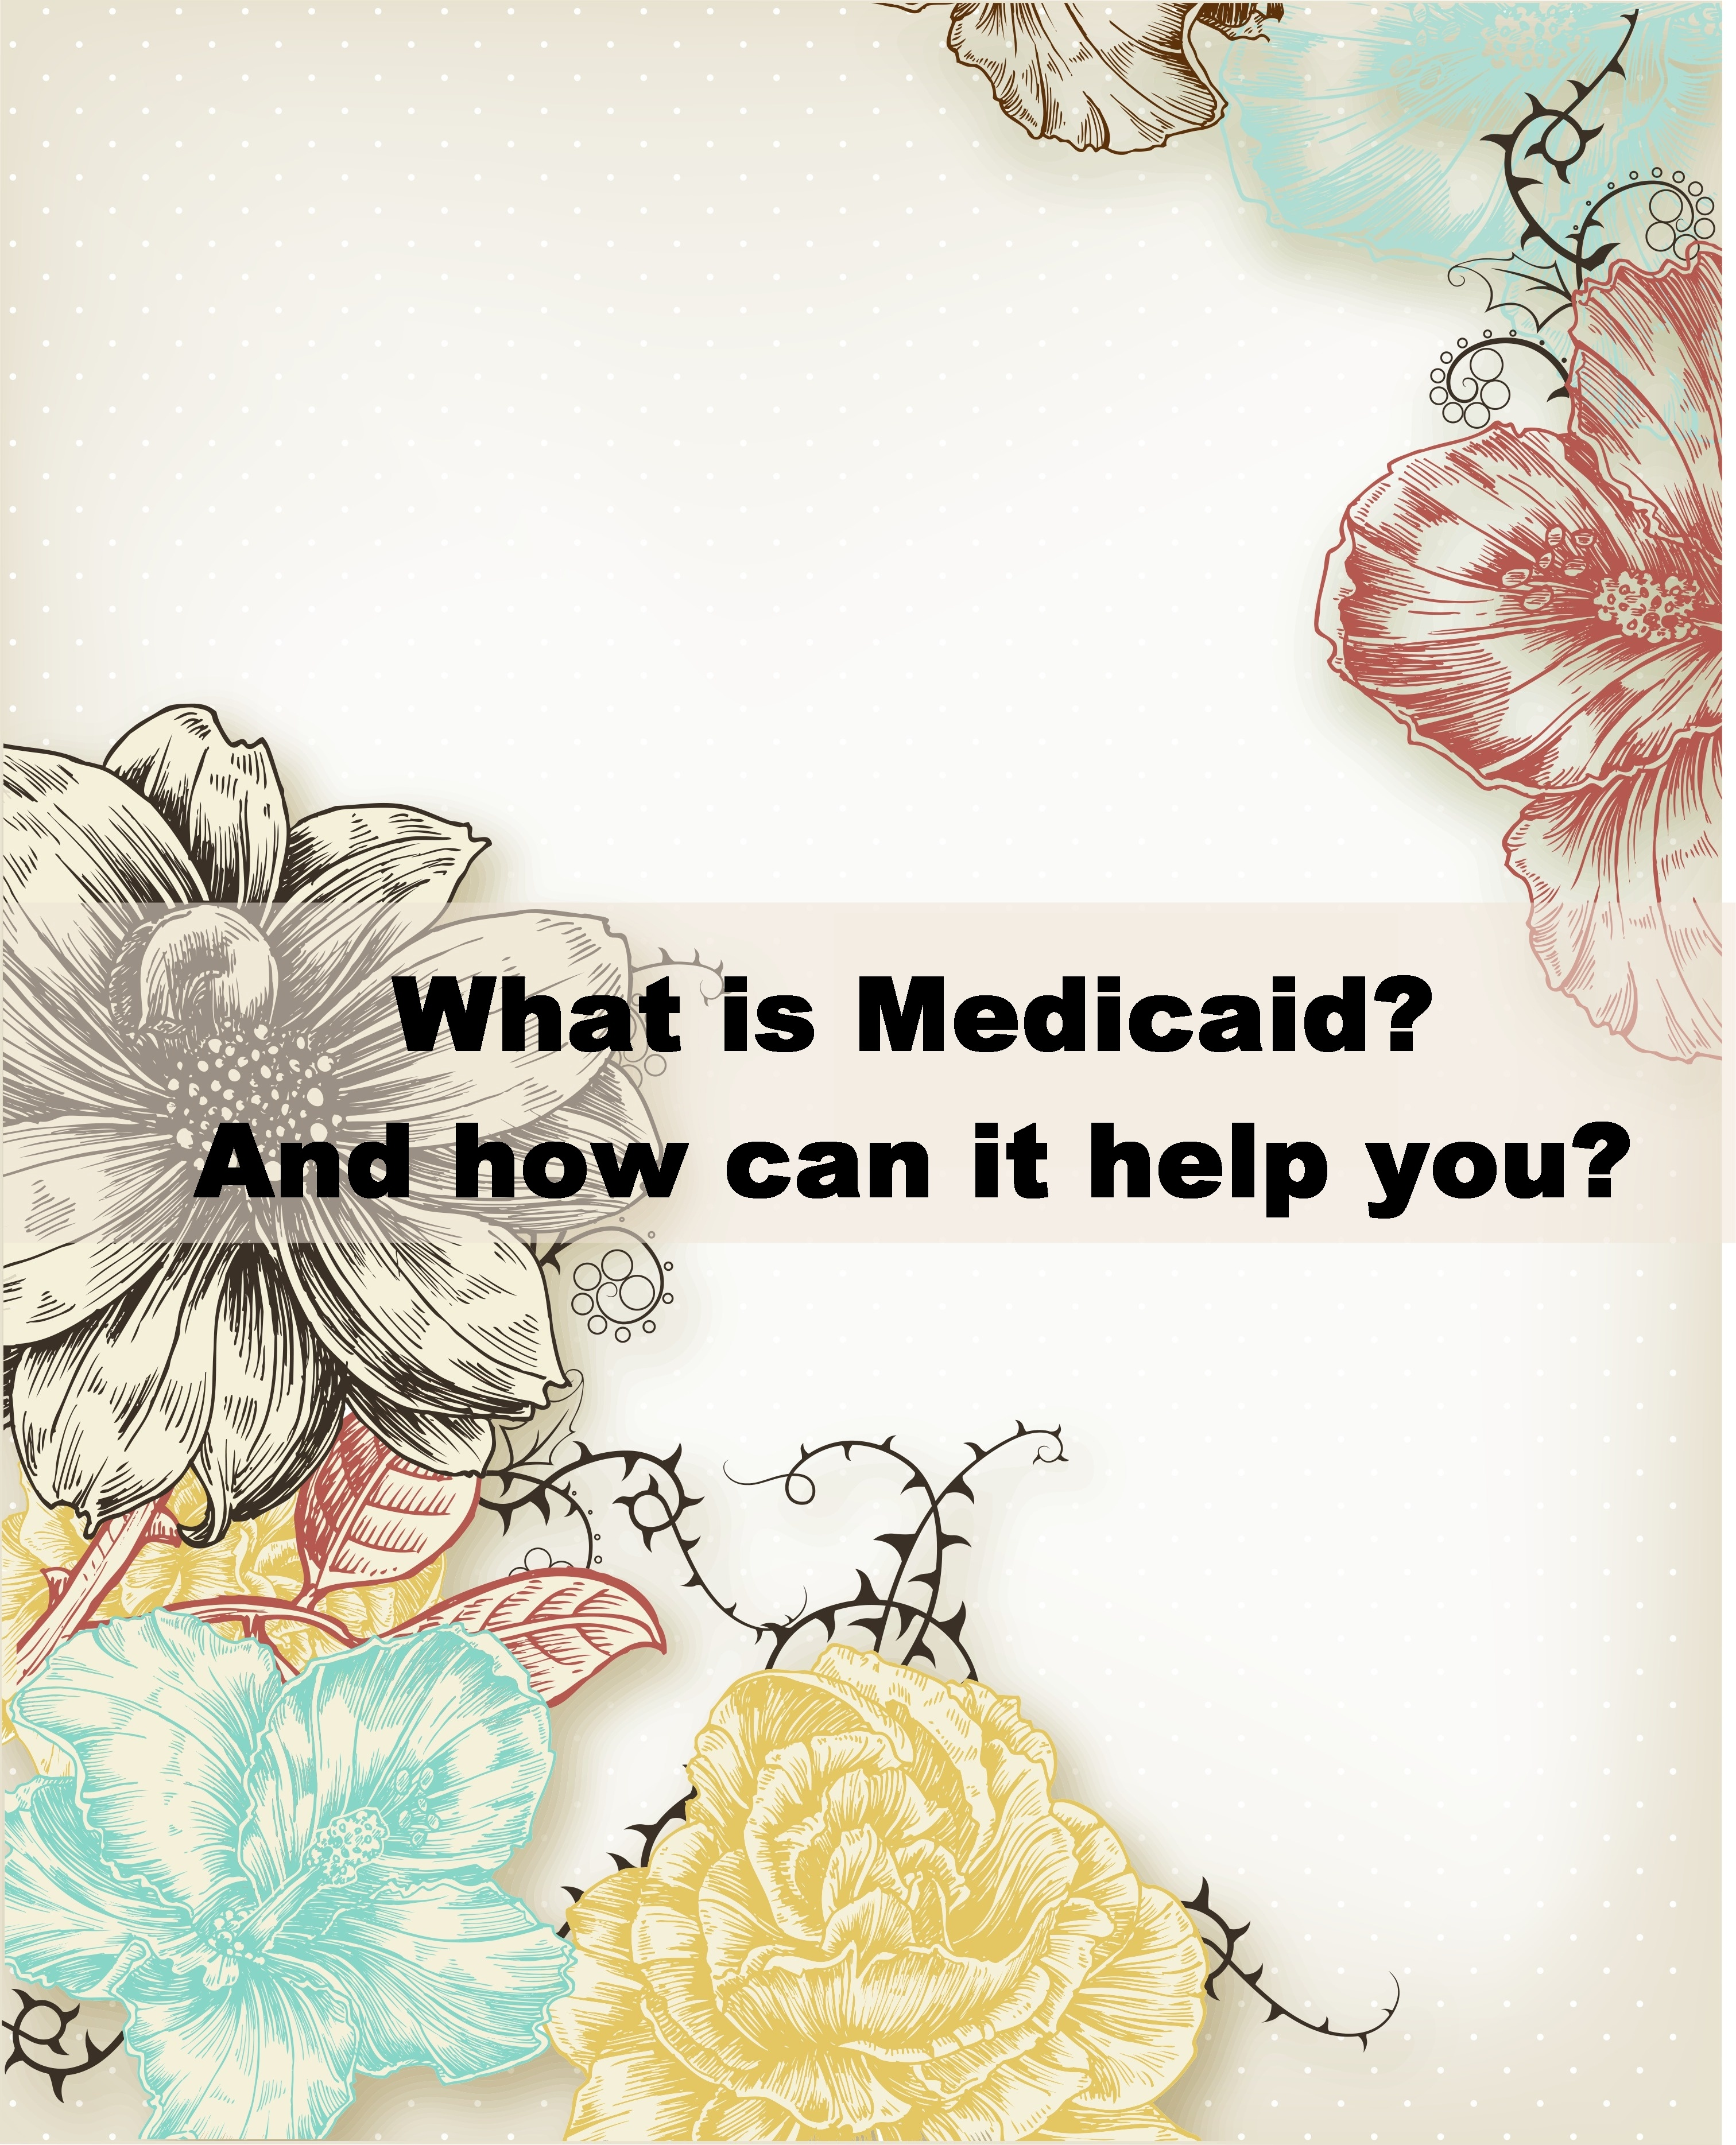 What is Medicaid? And how can it help you?